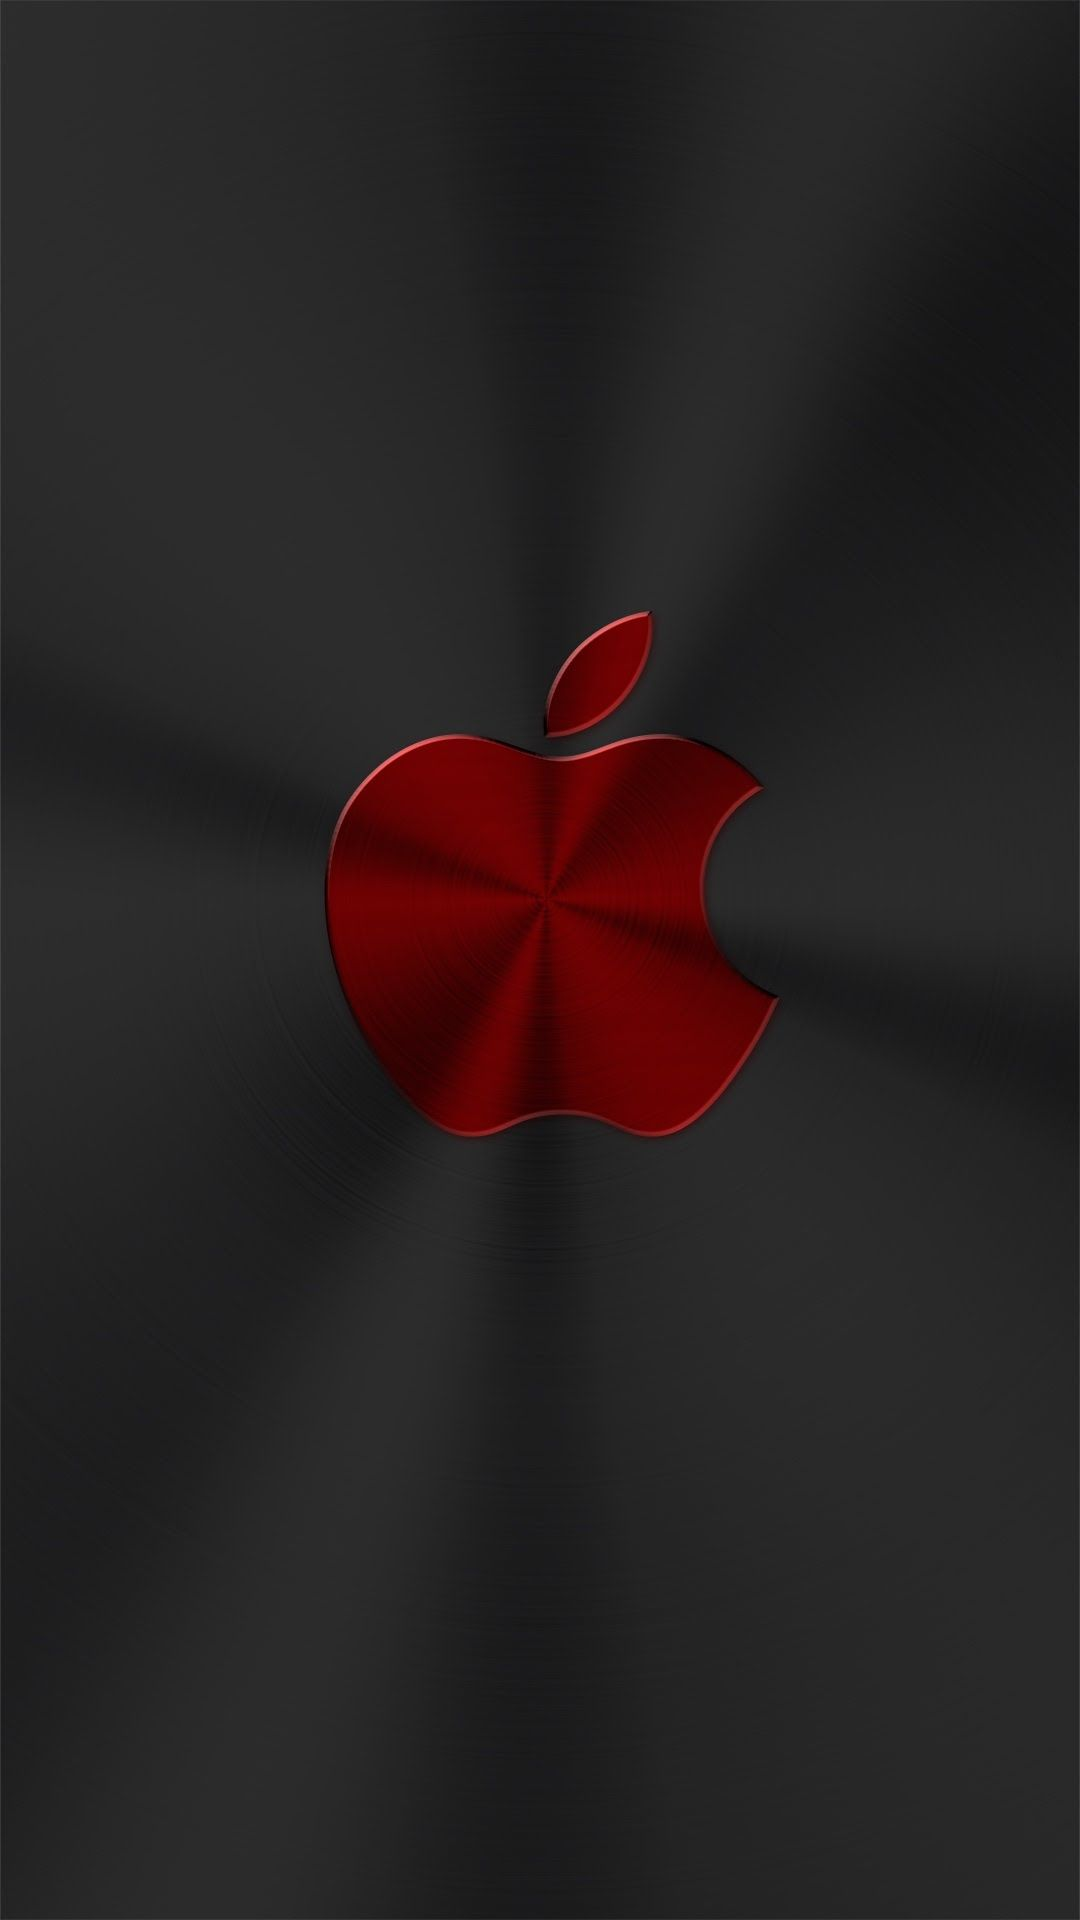 Red Chrome Apple Apple Wallpaper Apple Wallpaper Iphone Apple